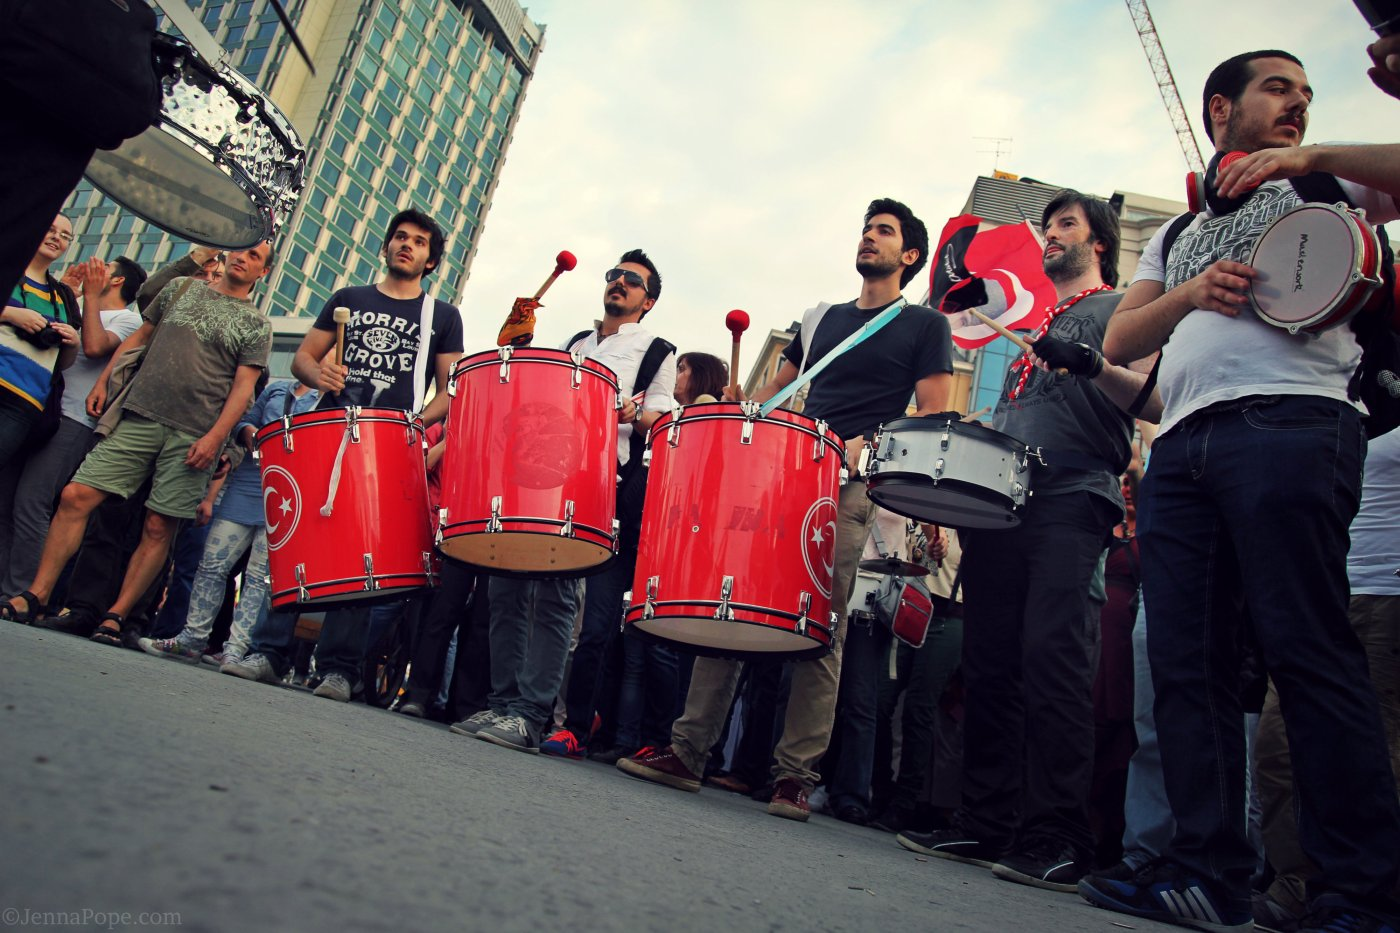 Drummers in Taksim Square.